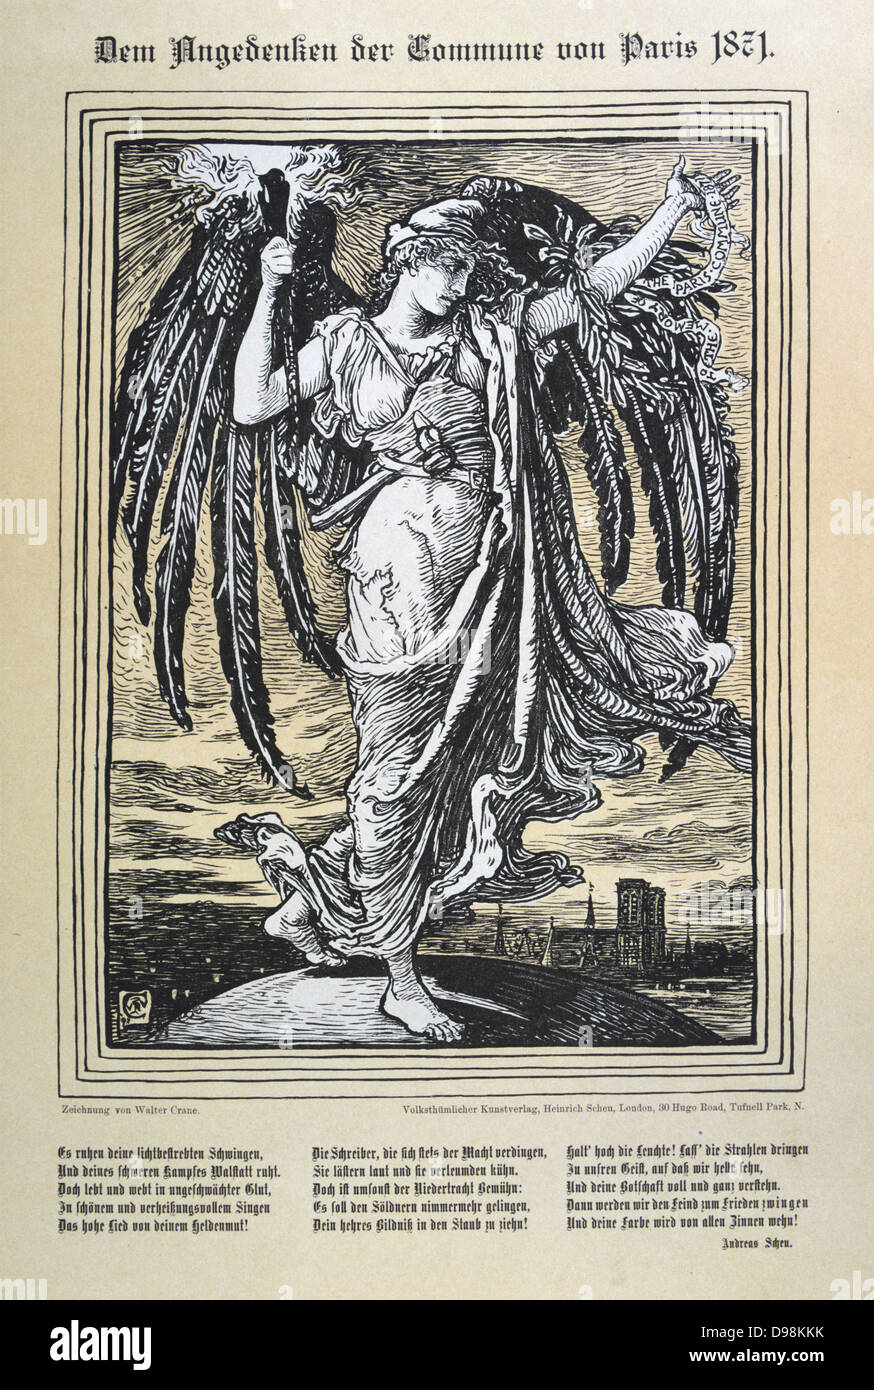 Allegorical representation of the Angel of the Paris Commune (26 March-28 May 1871). Illustration by Walter Crane Stock Photo